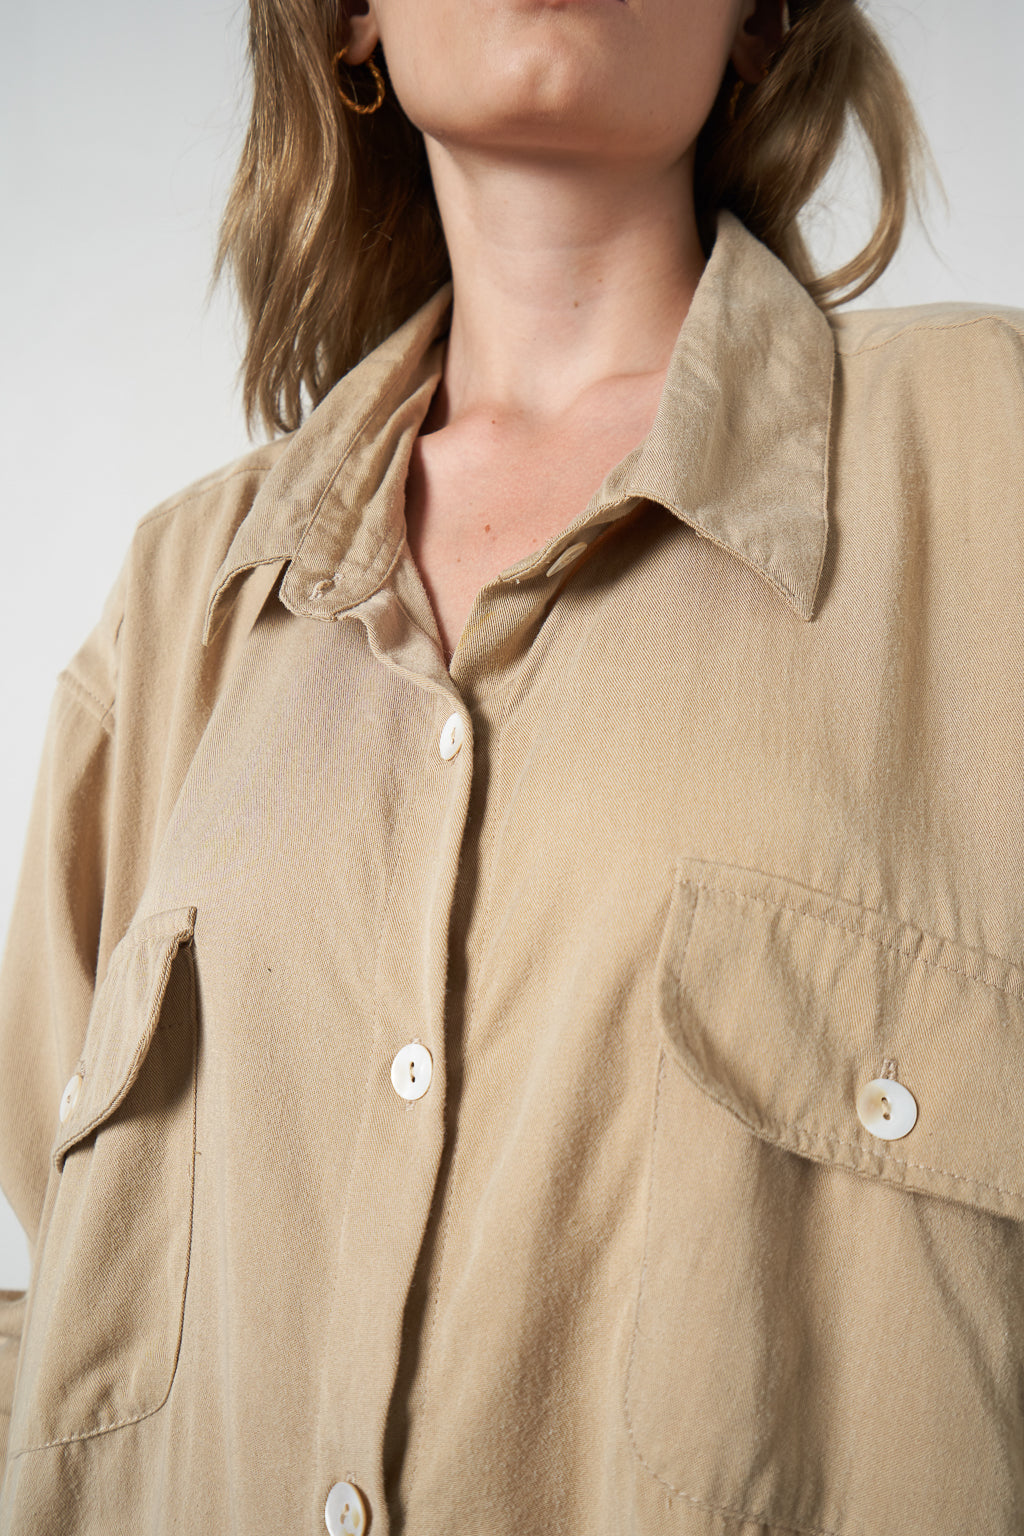 Arthur Apparel Women's Summer Long Sleeved Shirt Tencel Natural